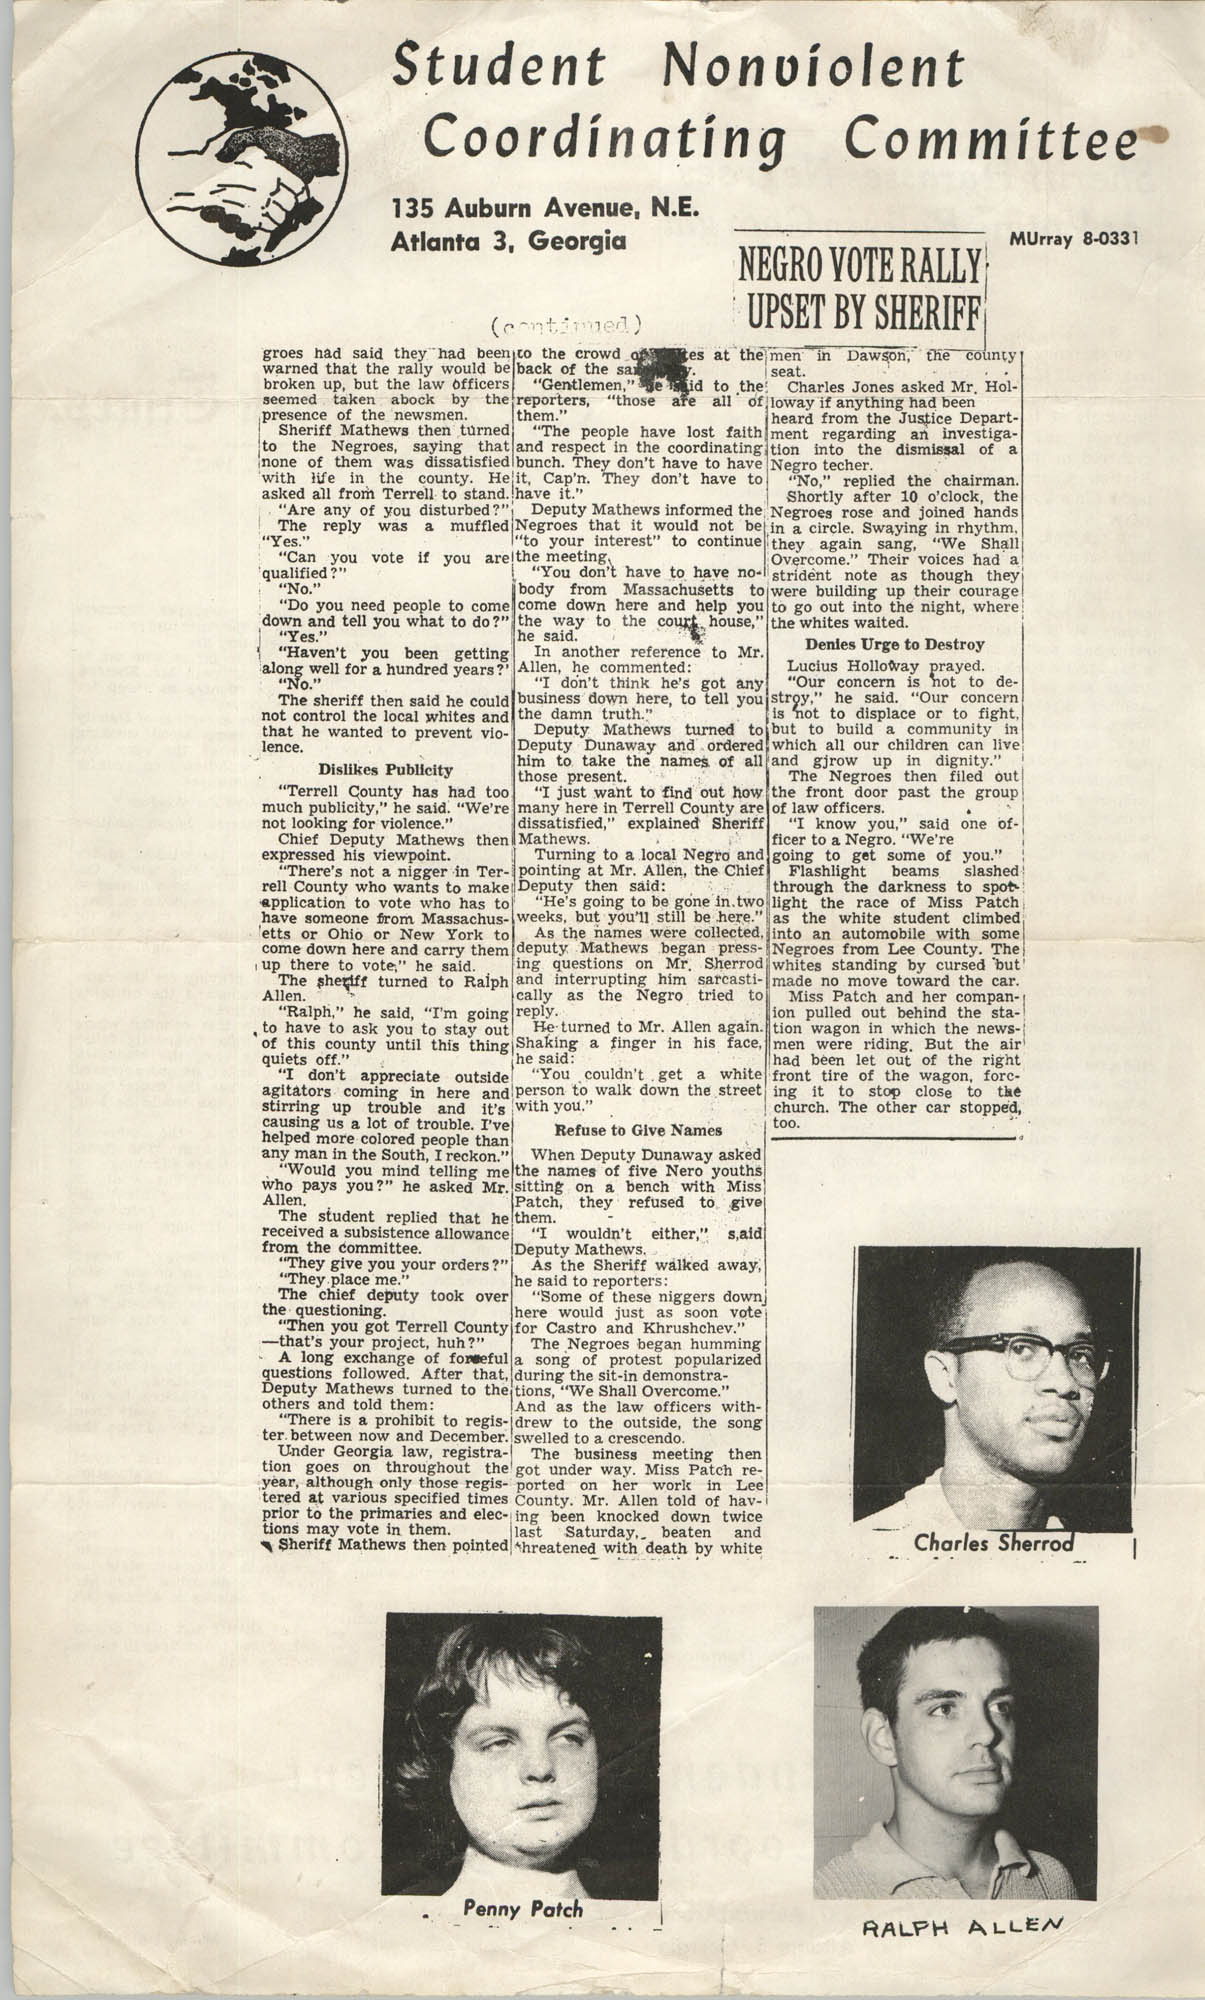 Student Nonviolent Coordinating Committee Newspaper Articles